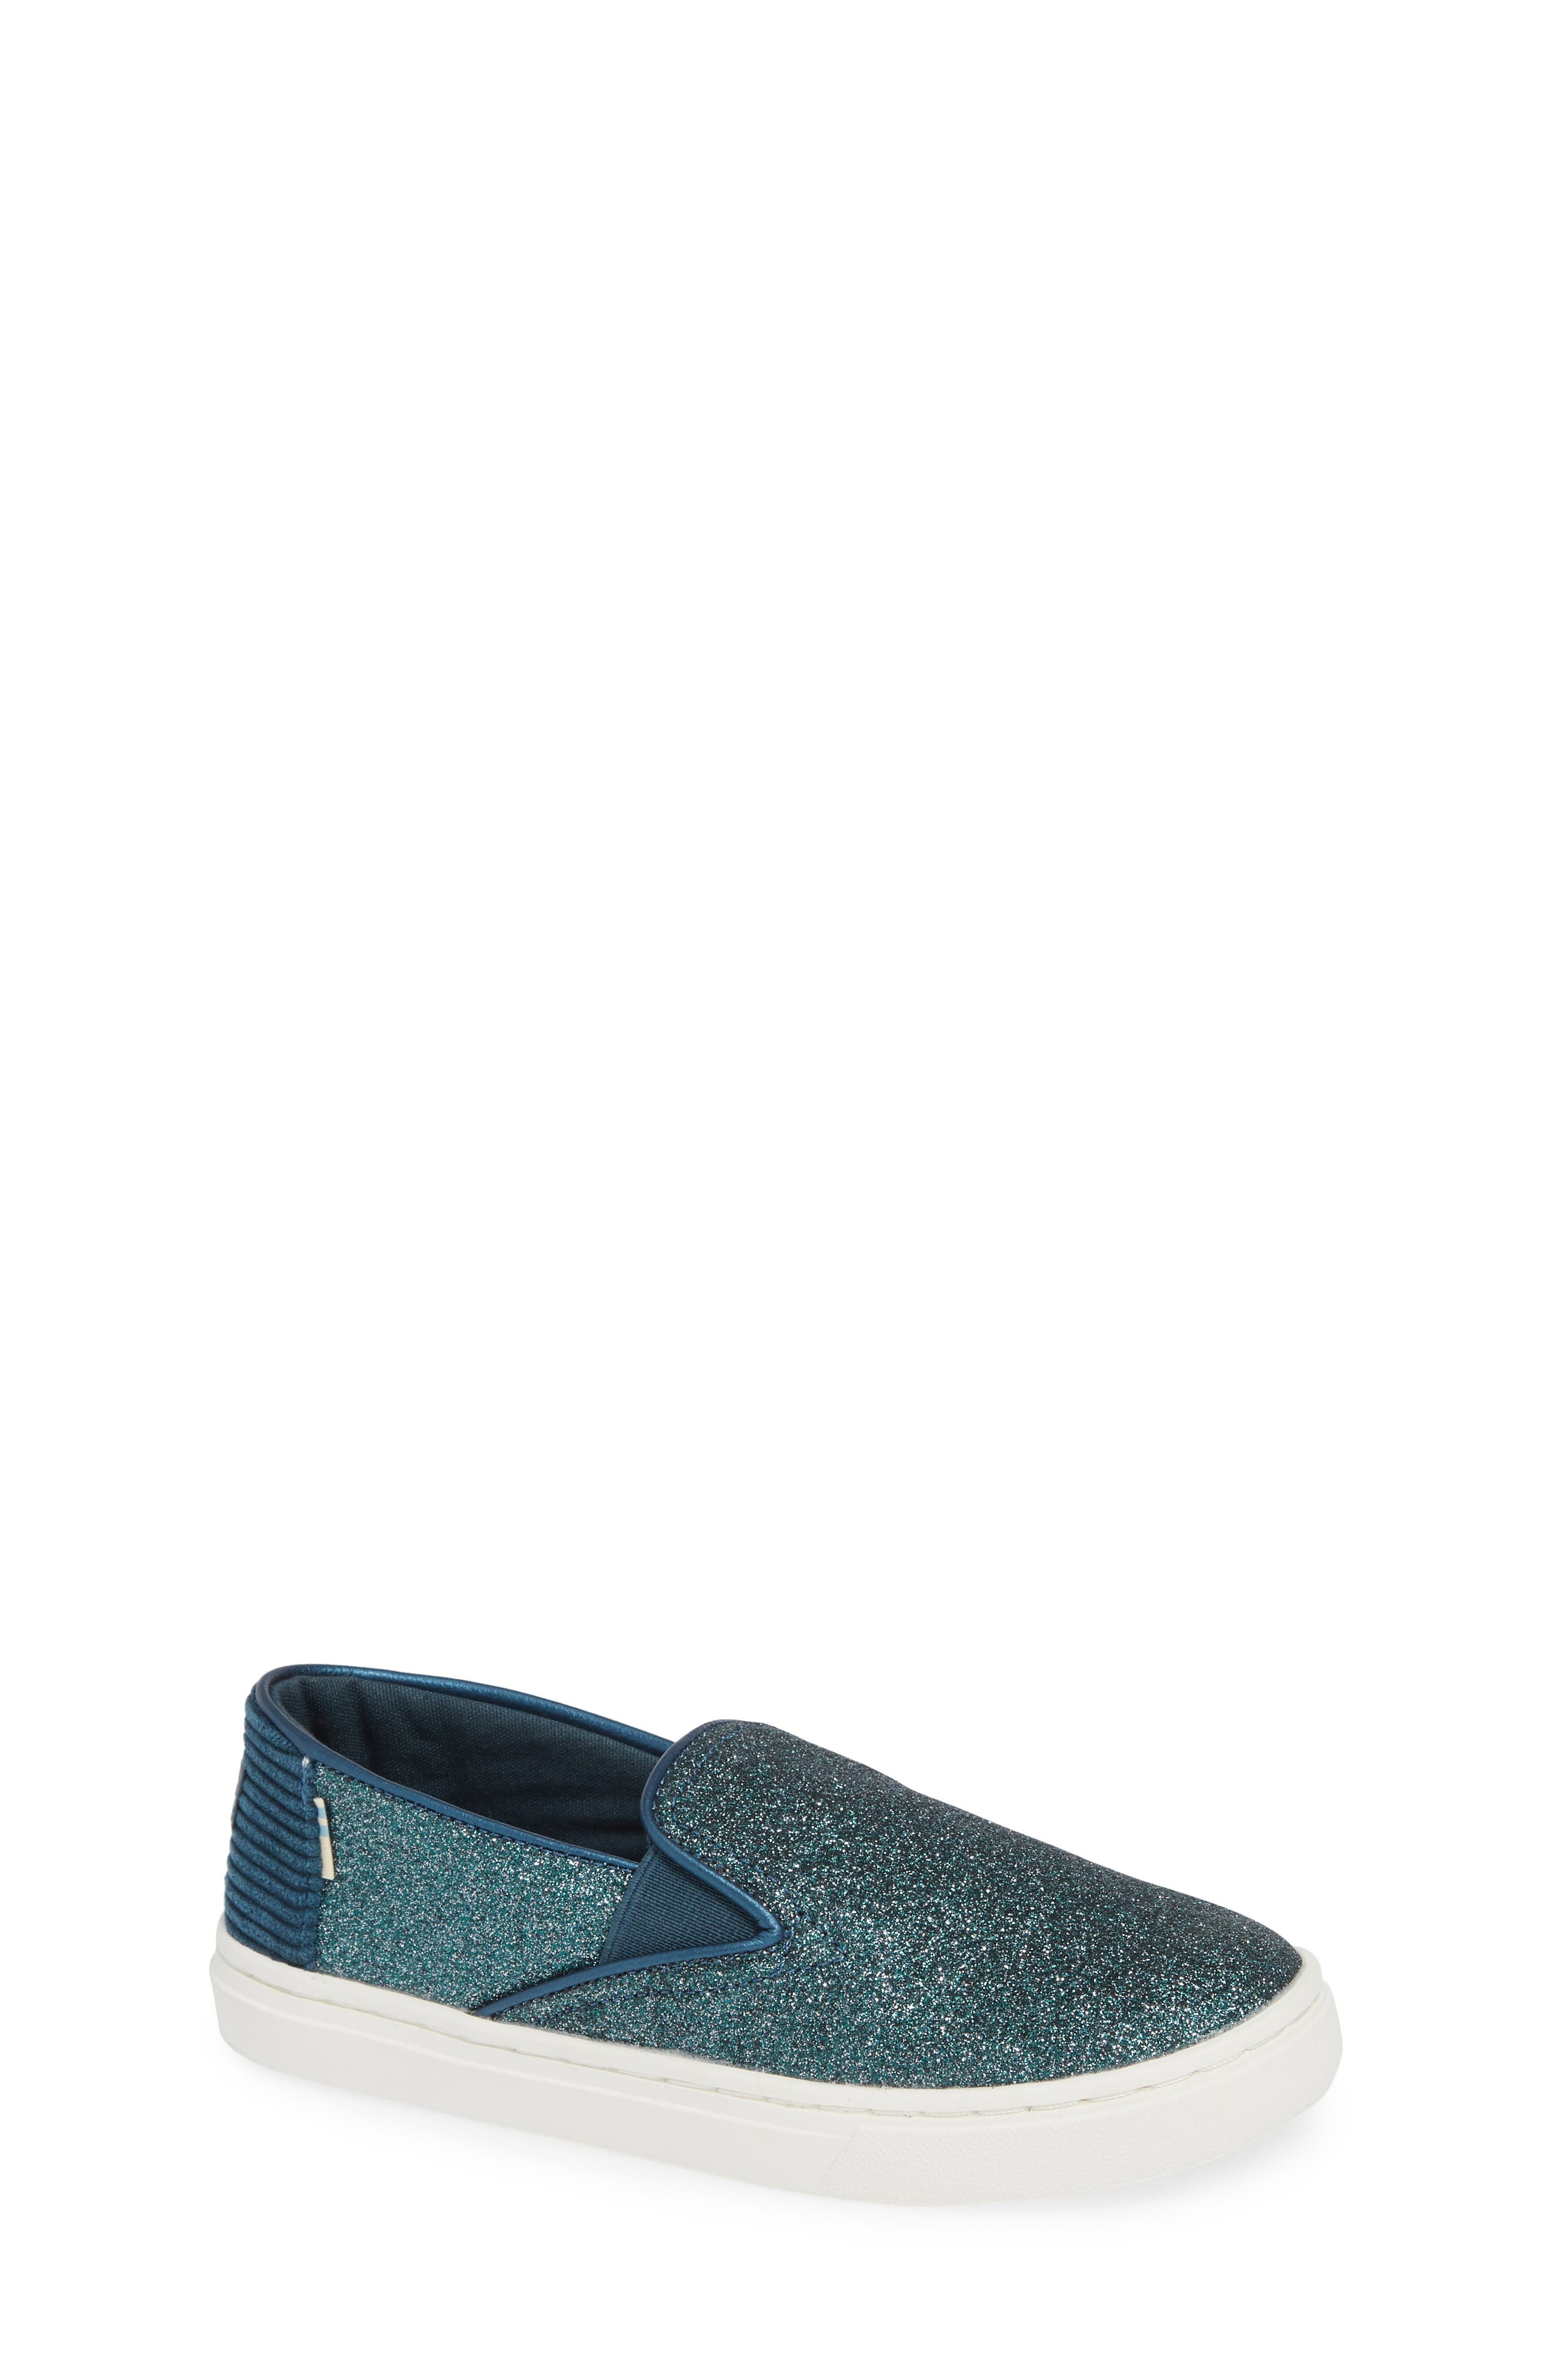 Luca Slip-On Sneaker,                             Main thumbnail 1, color,                             ATLANTIC IRIDESCENT/ CORDUROY